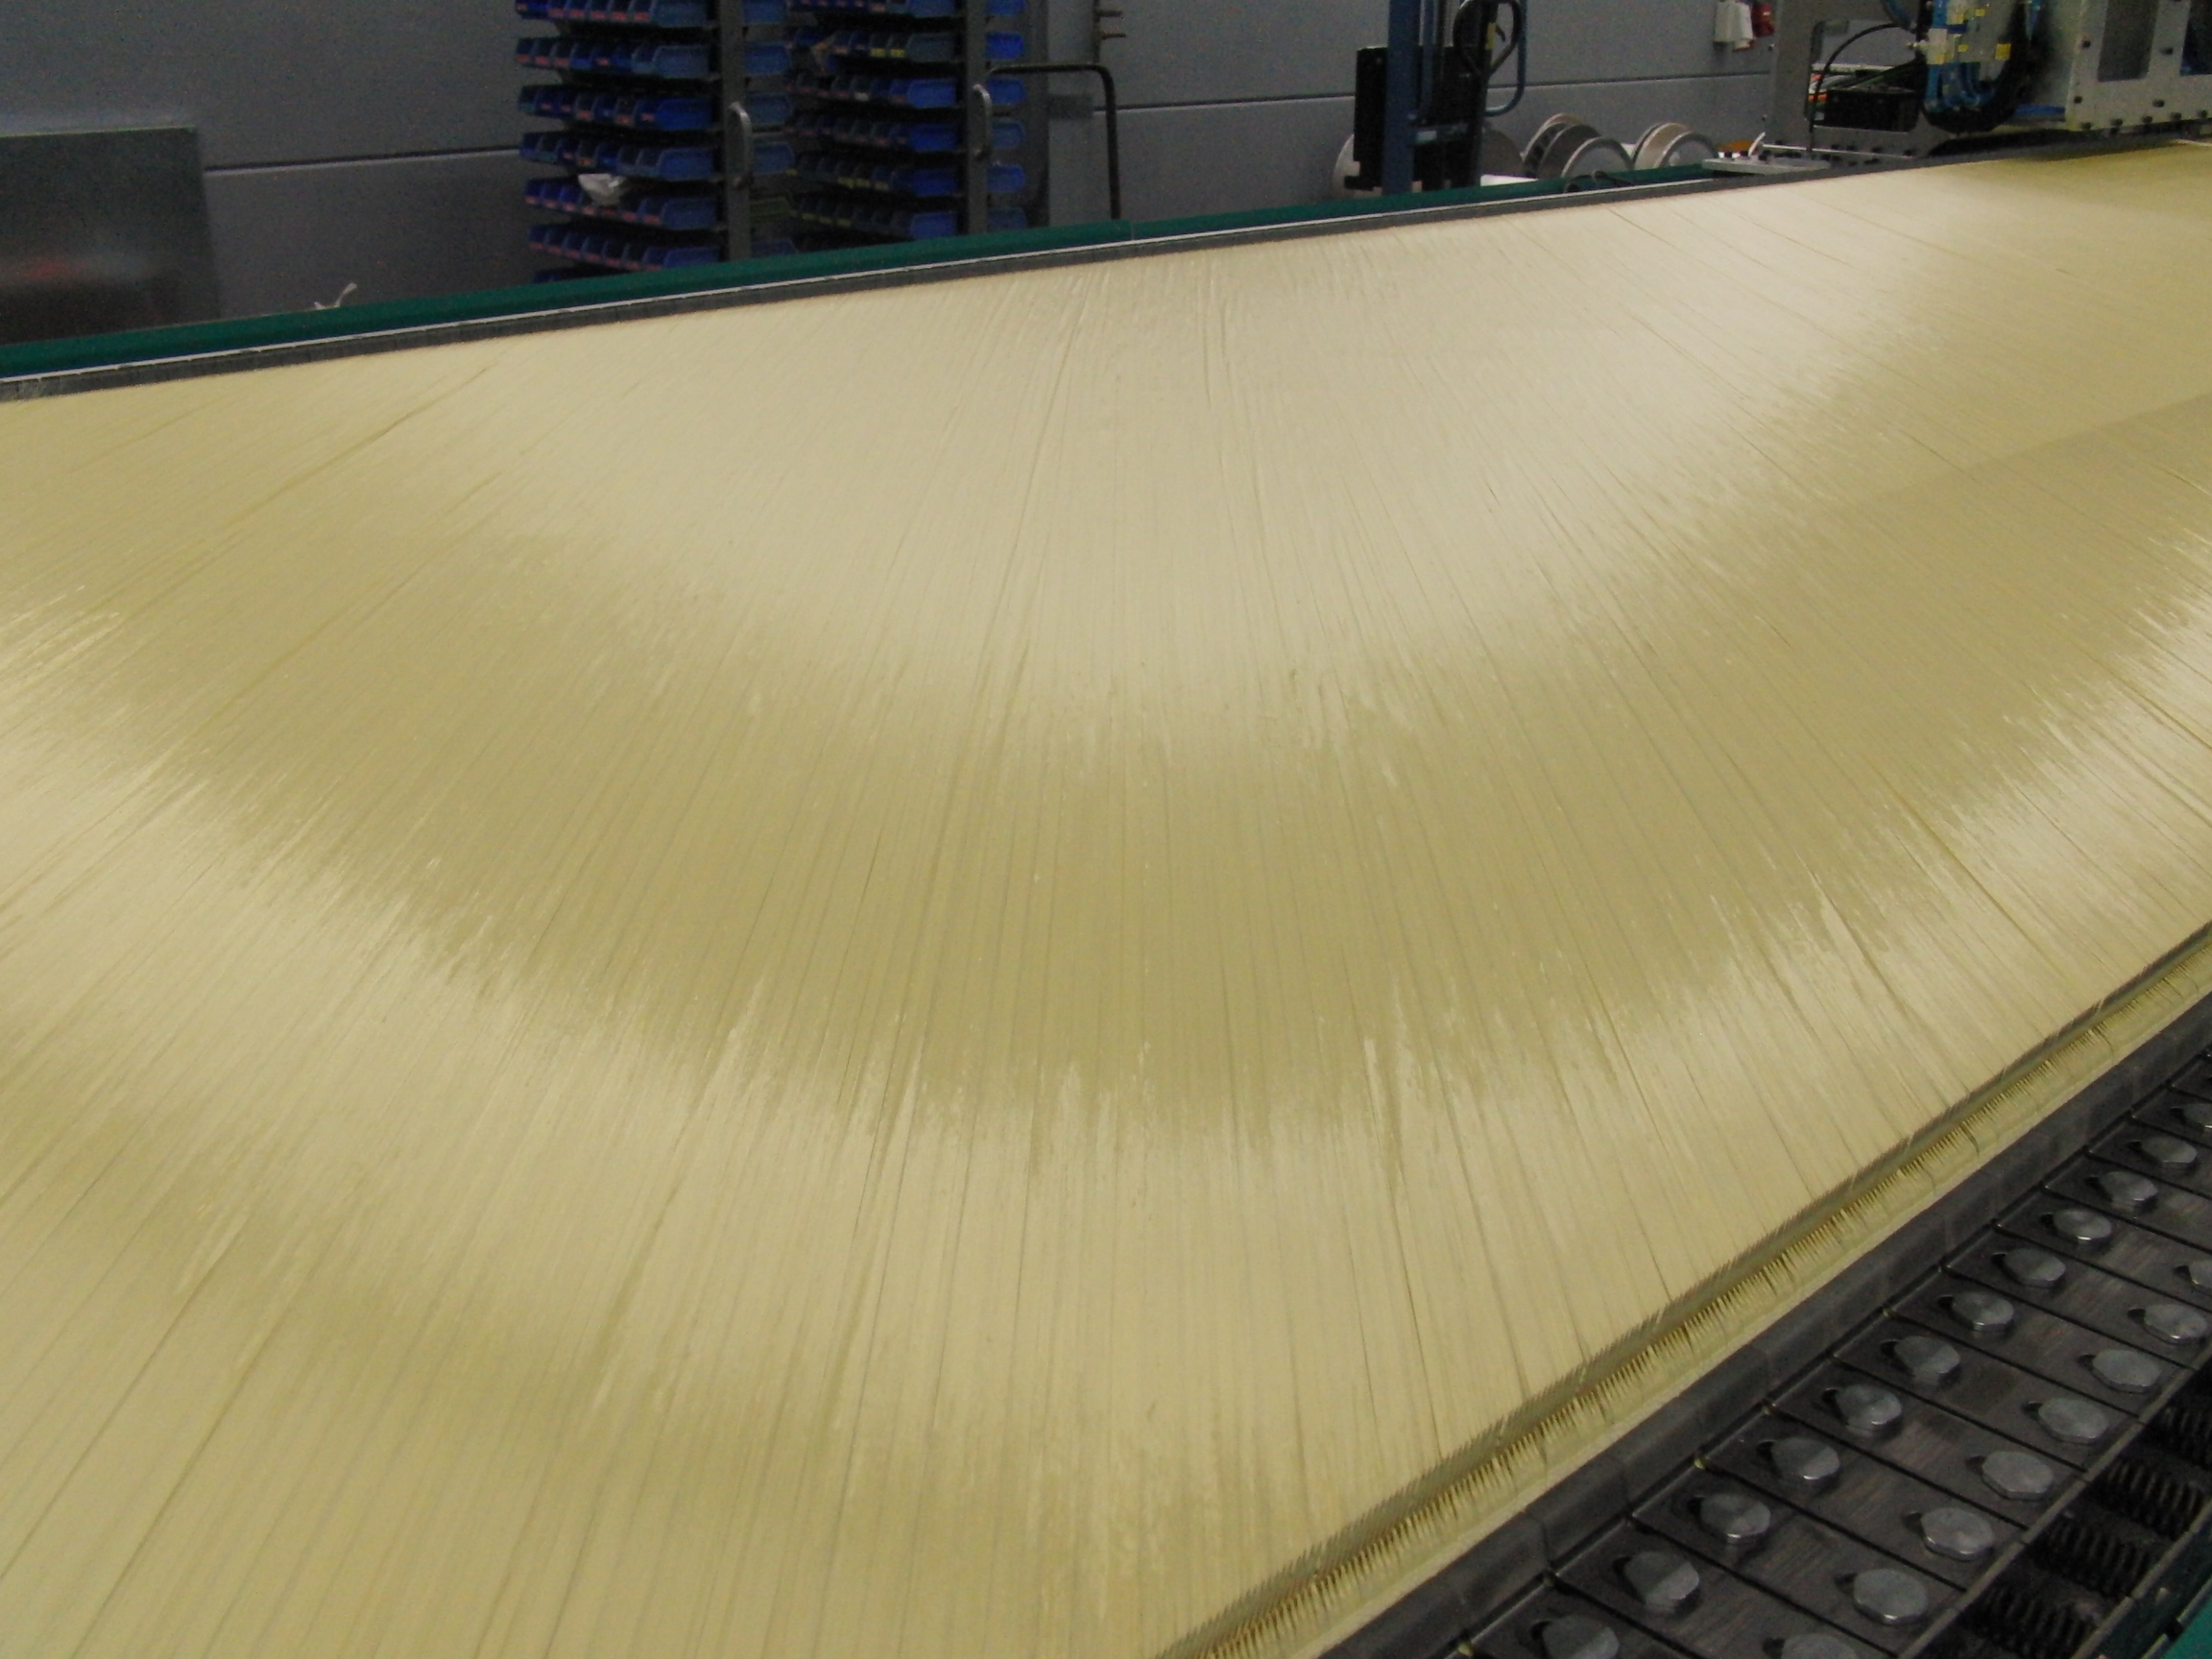 Biaxial aramid textile weighing 180 g/m2 on the COP MAX 5 Aramid before bonding at the knitting point. © Karl Mayer.